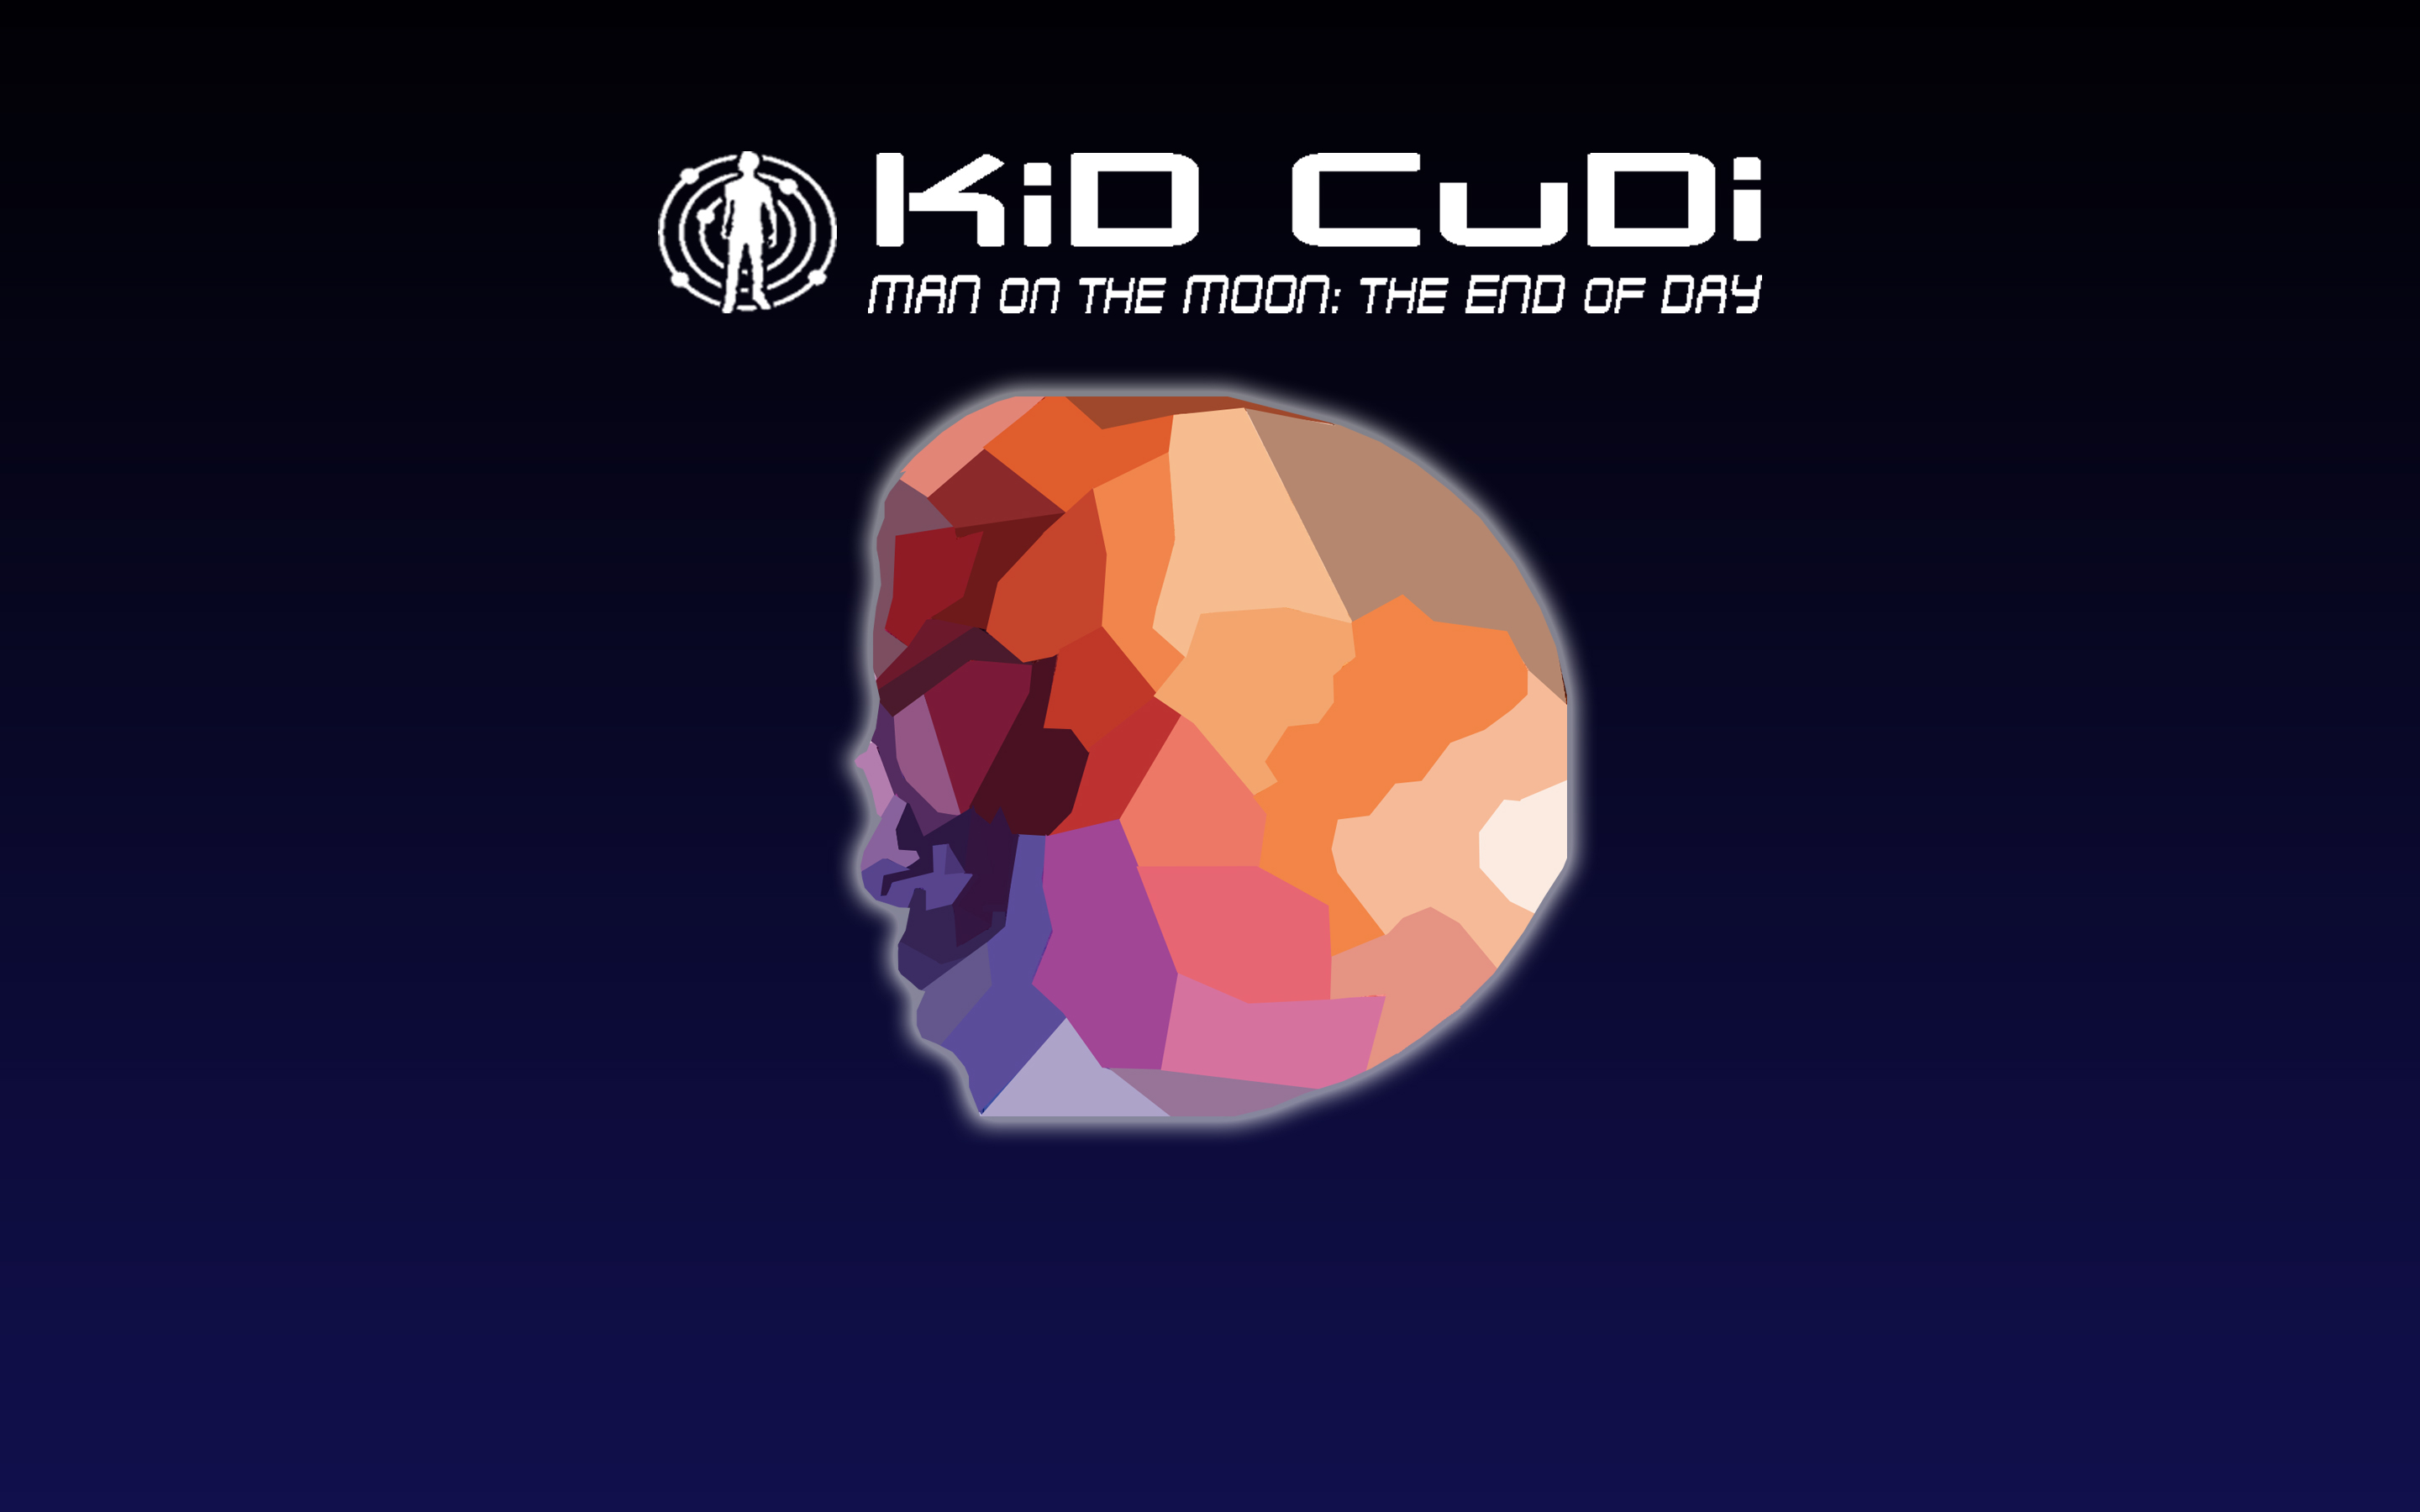 Kid Cudi Man On The Moon Wallpaper Posted By Zoey Thompson